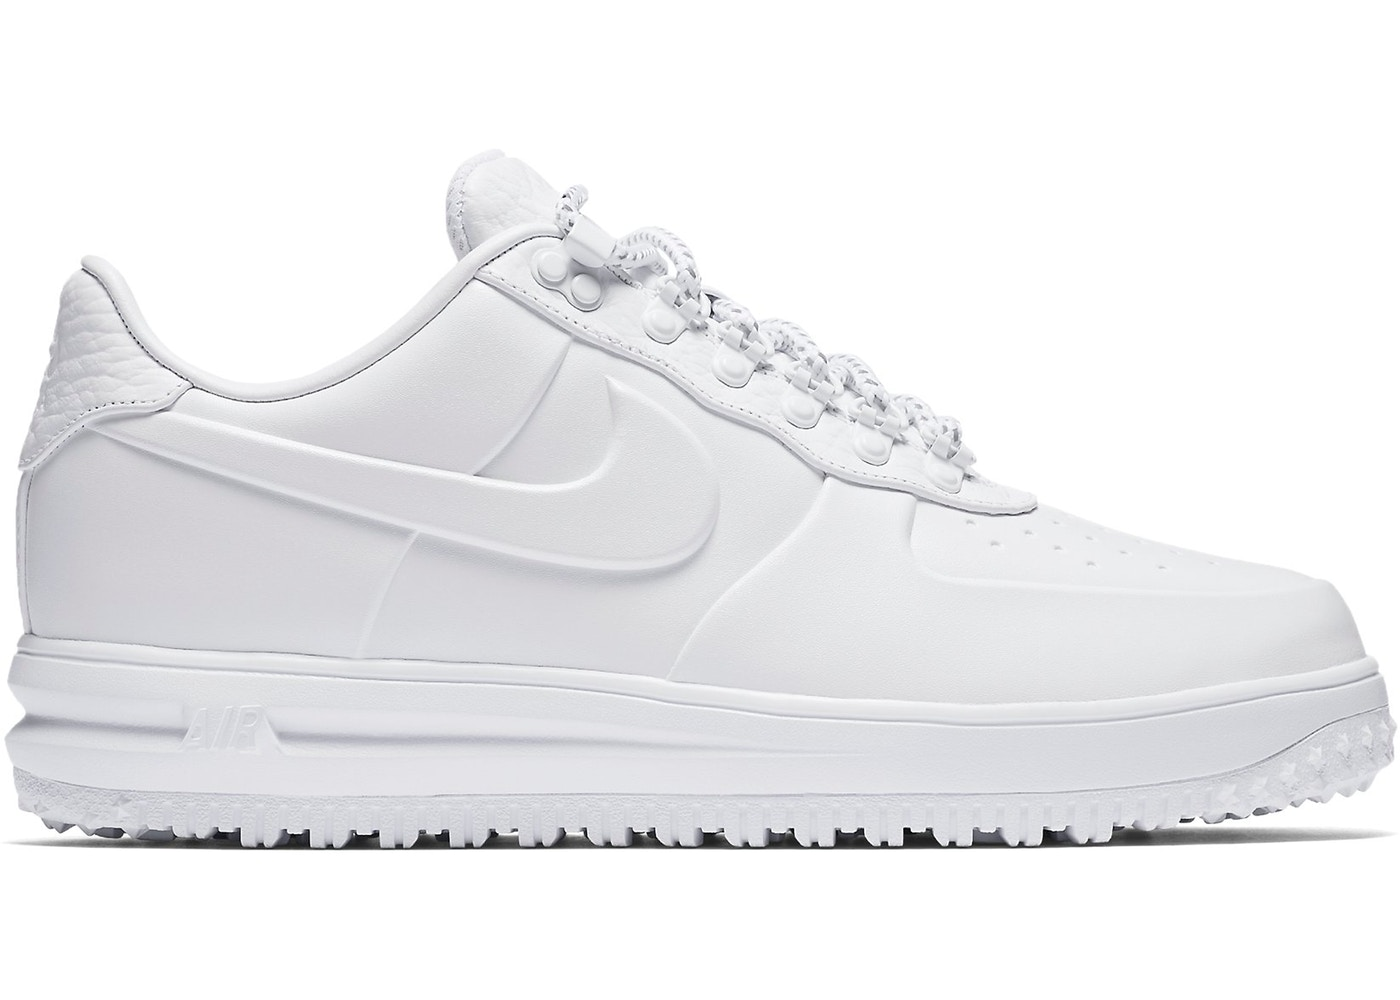 new styles 38ae3 46f98 Sell. or Ask. Size 7. View All Bids. Nike Lunar Force 1 ...